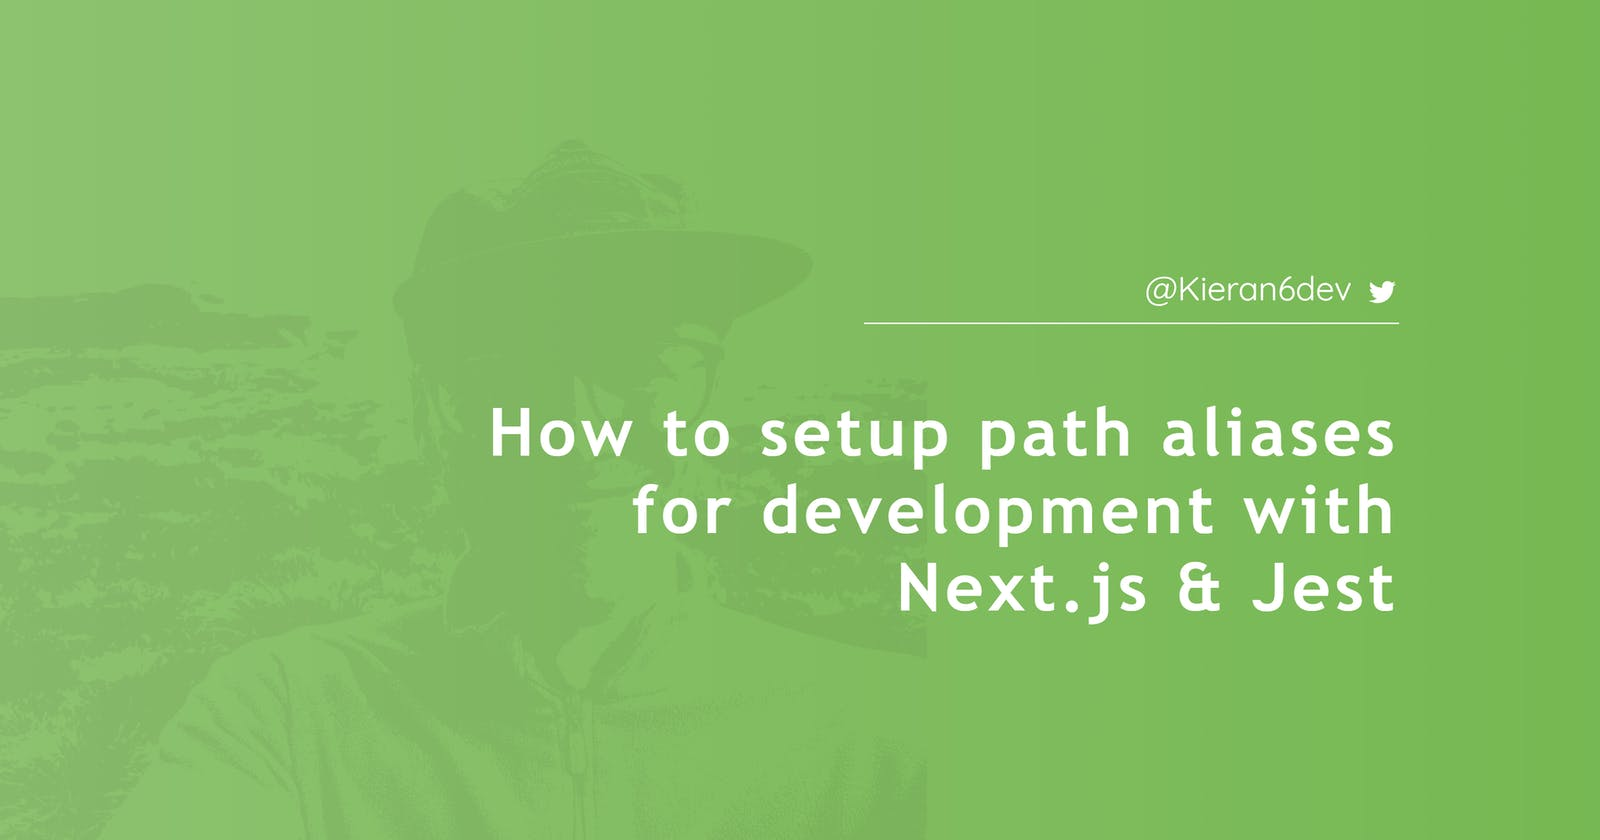 How to setup path aliases for development with Next.js & Jest